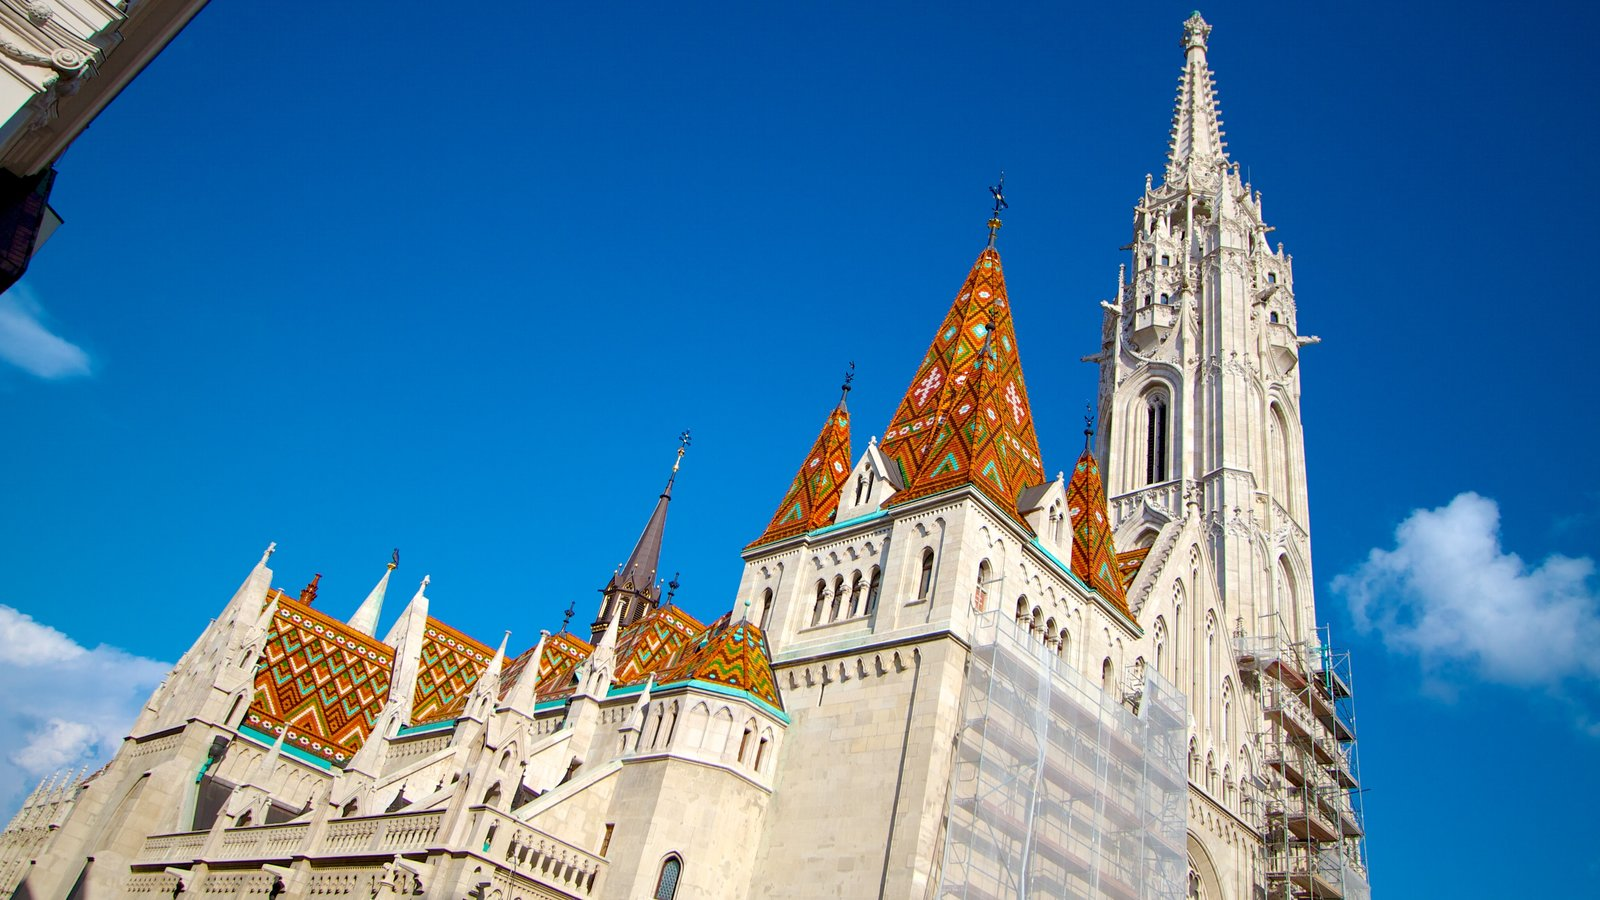 Matthias Church showing a city, religious elements and heritage architecture